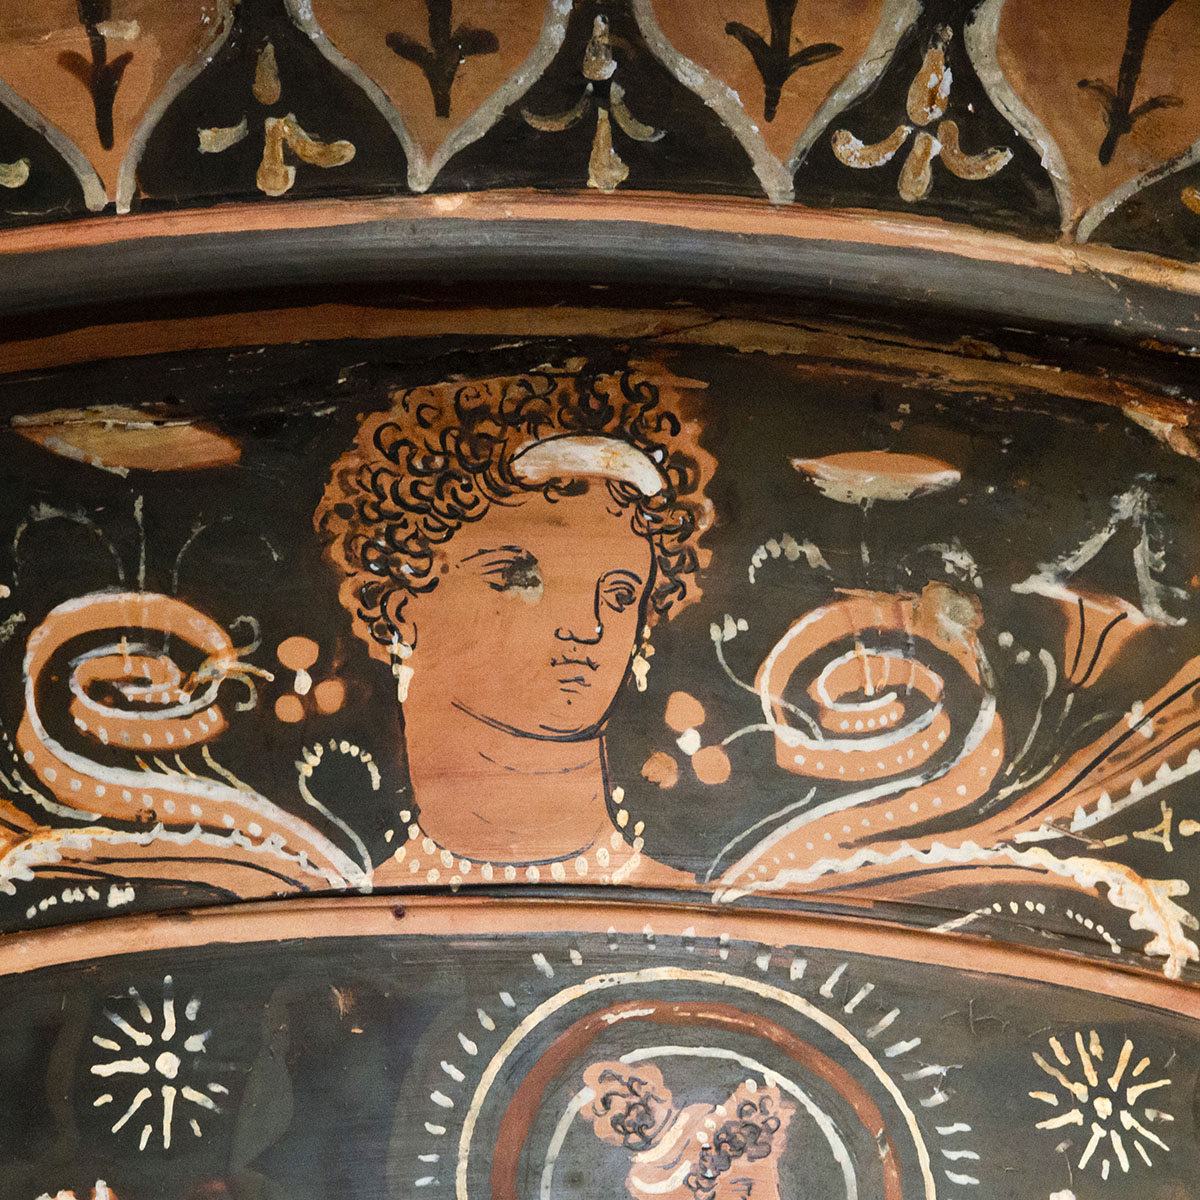 Volute-krater depicting the journey of Orpheus to the Underworld. Detail: a female head. Red-figured volute-krater. Apulia. Attributed to The Underworld Painter. Clay. Ca. 330—310 BCE. Munich, State Antique Collection